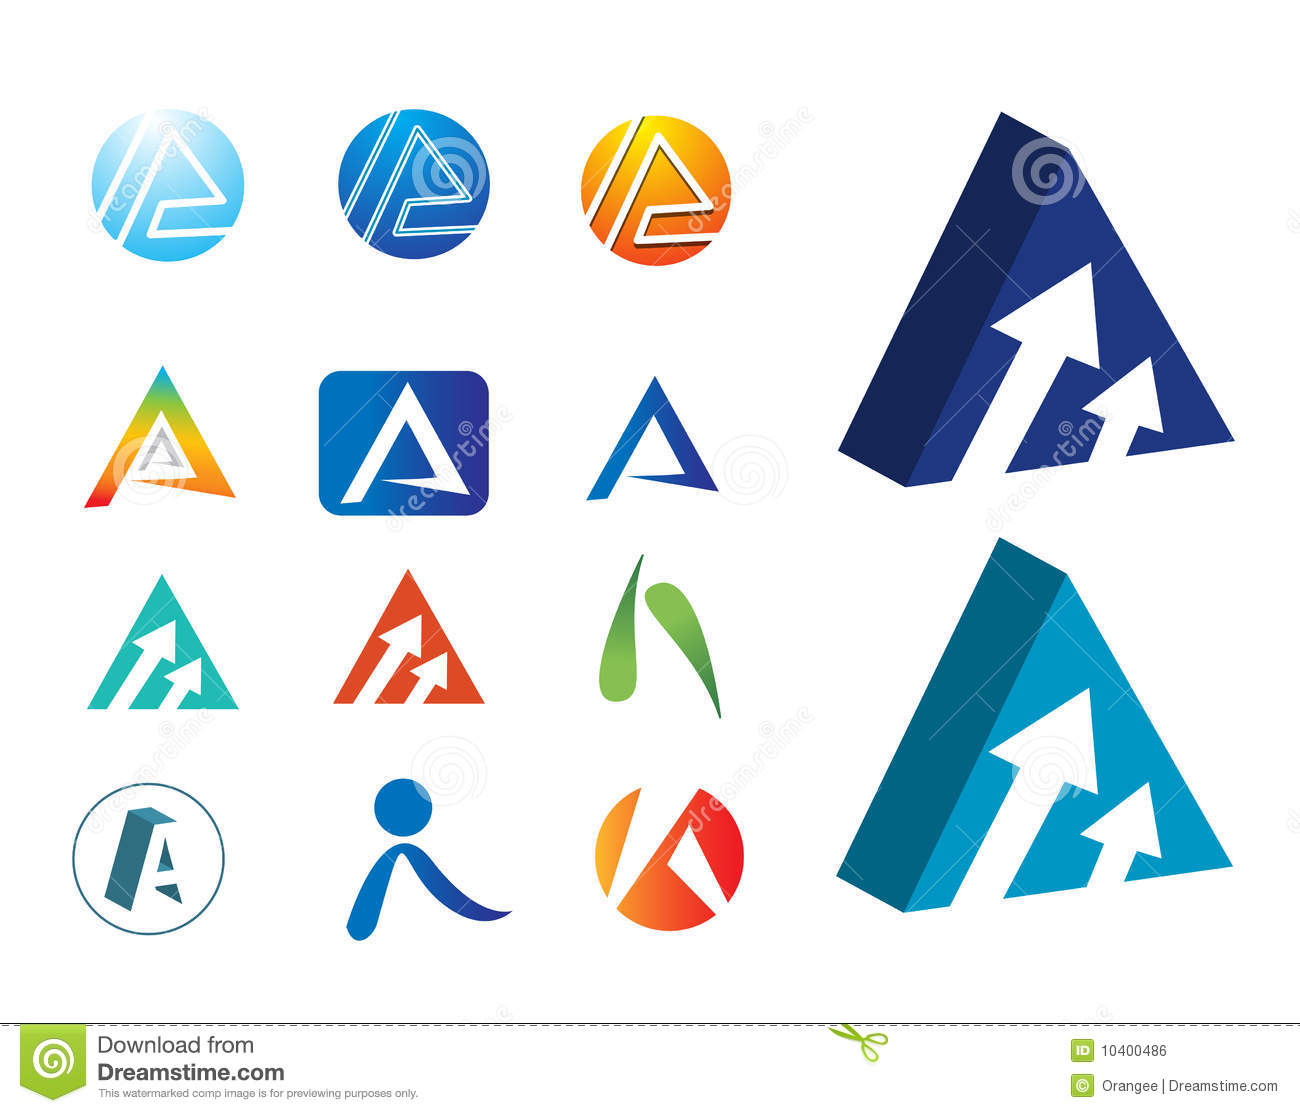 Royalty Free Stock Image Logos Image10400486 on file symbol thumbs up color